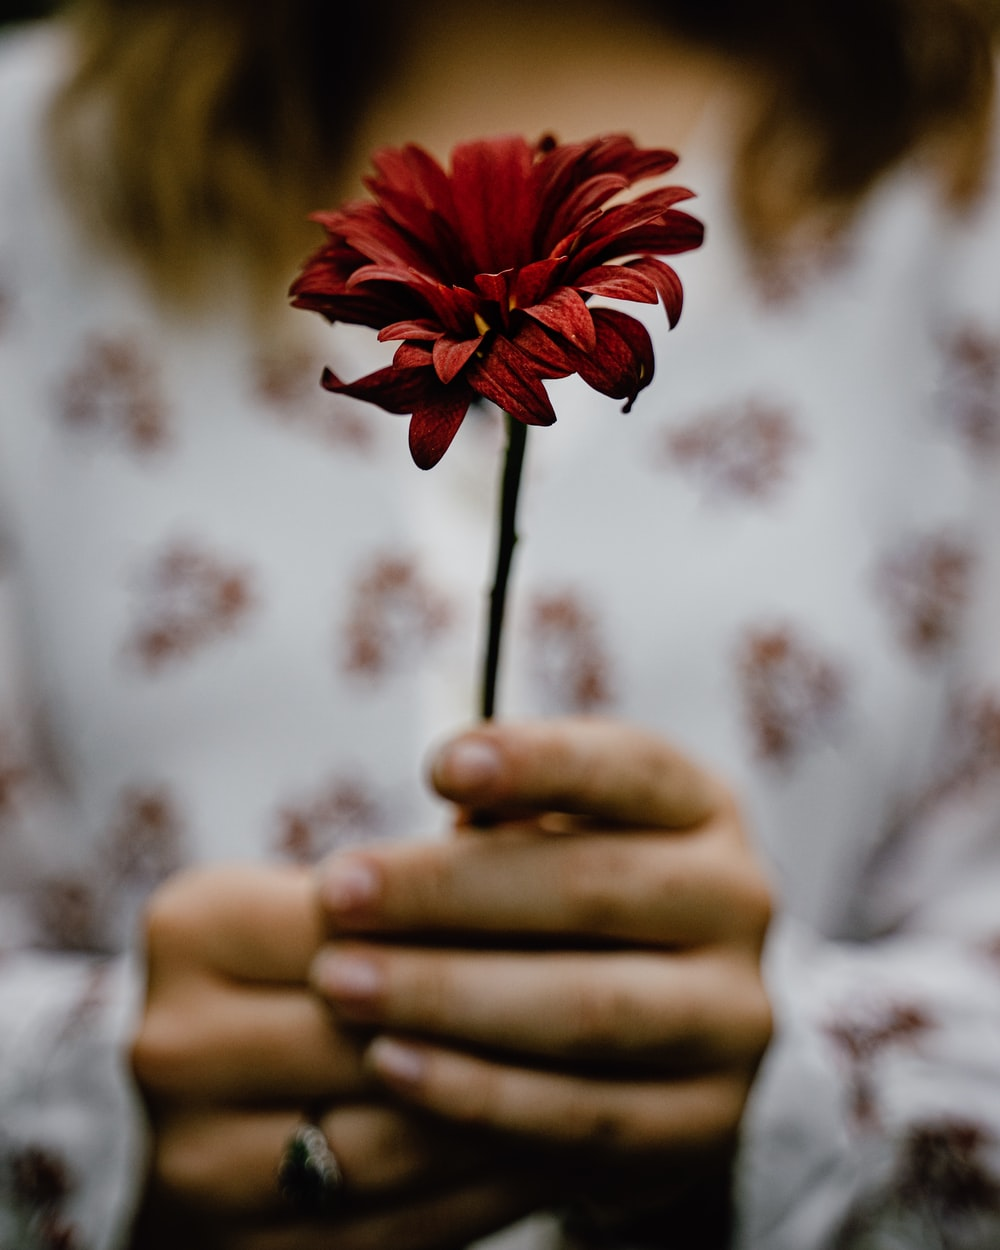 person holding red petaled flower